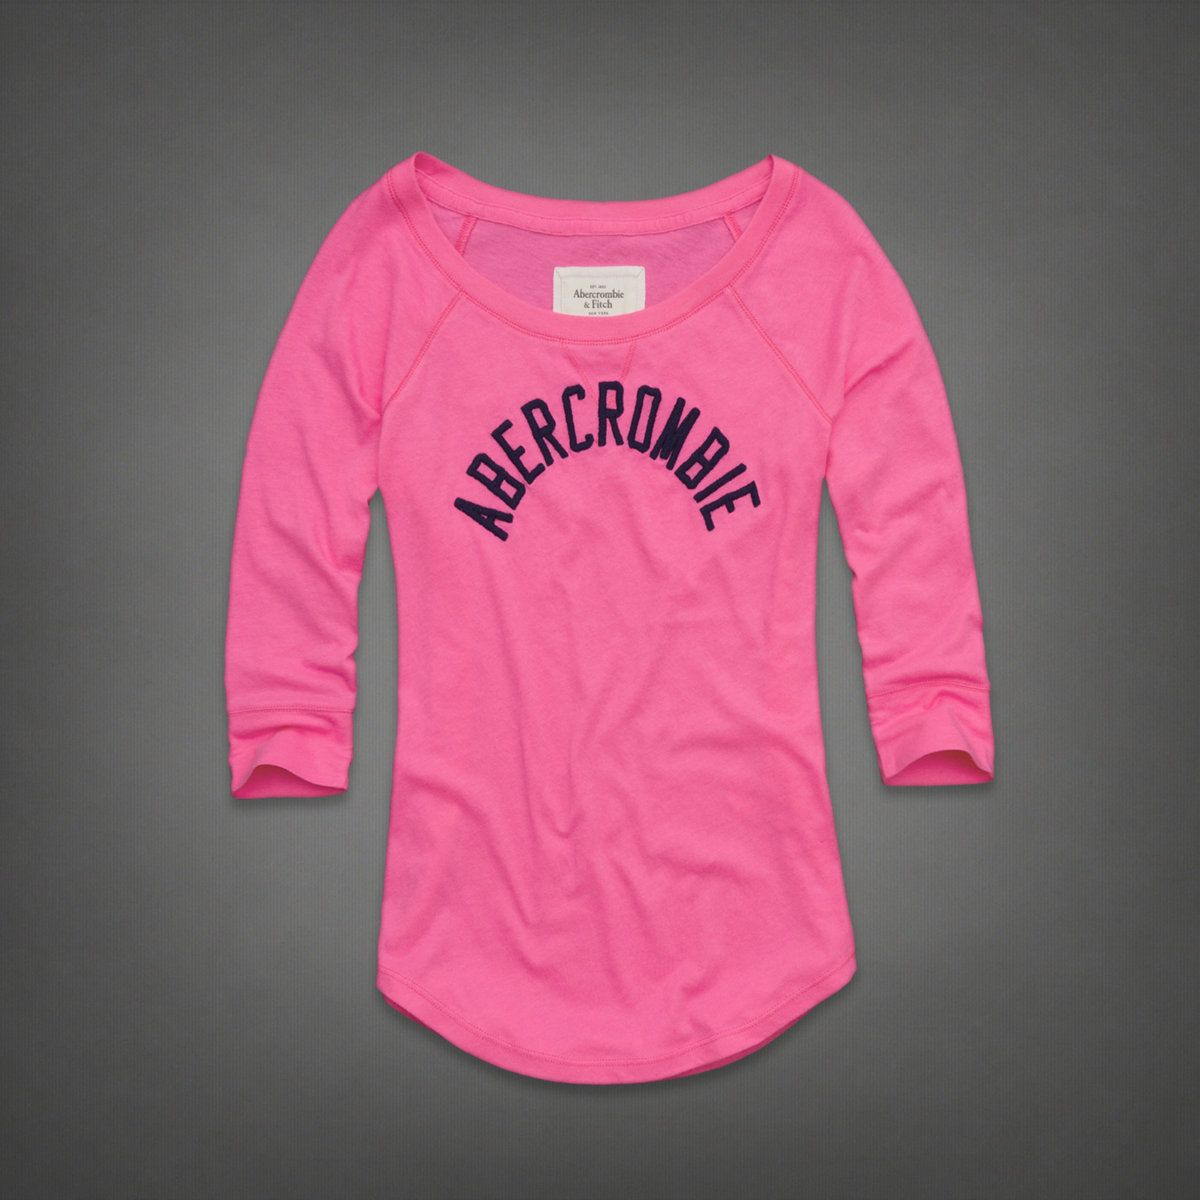 Abercrombie Accessories Abercrombie Accessories Abercrombie Womens Abercrombie Couple Abercrombie Womens: Womens Graphic Tees